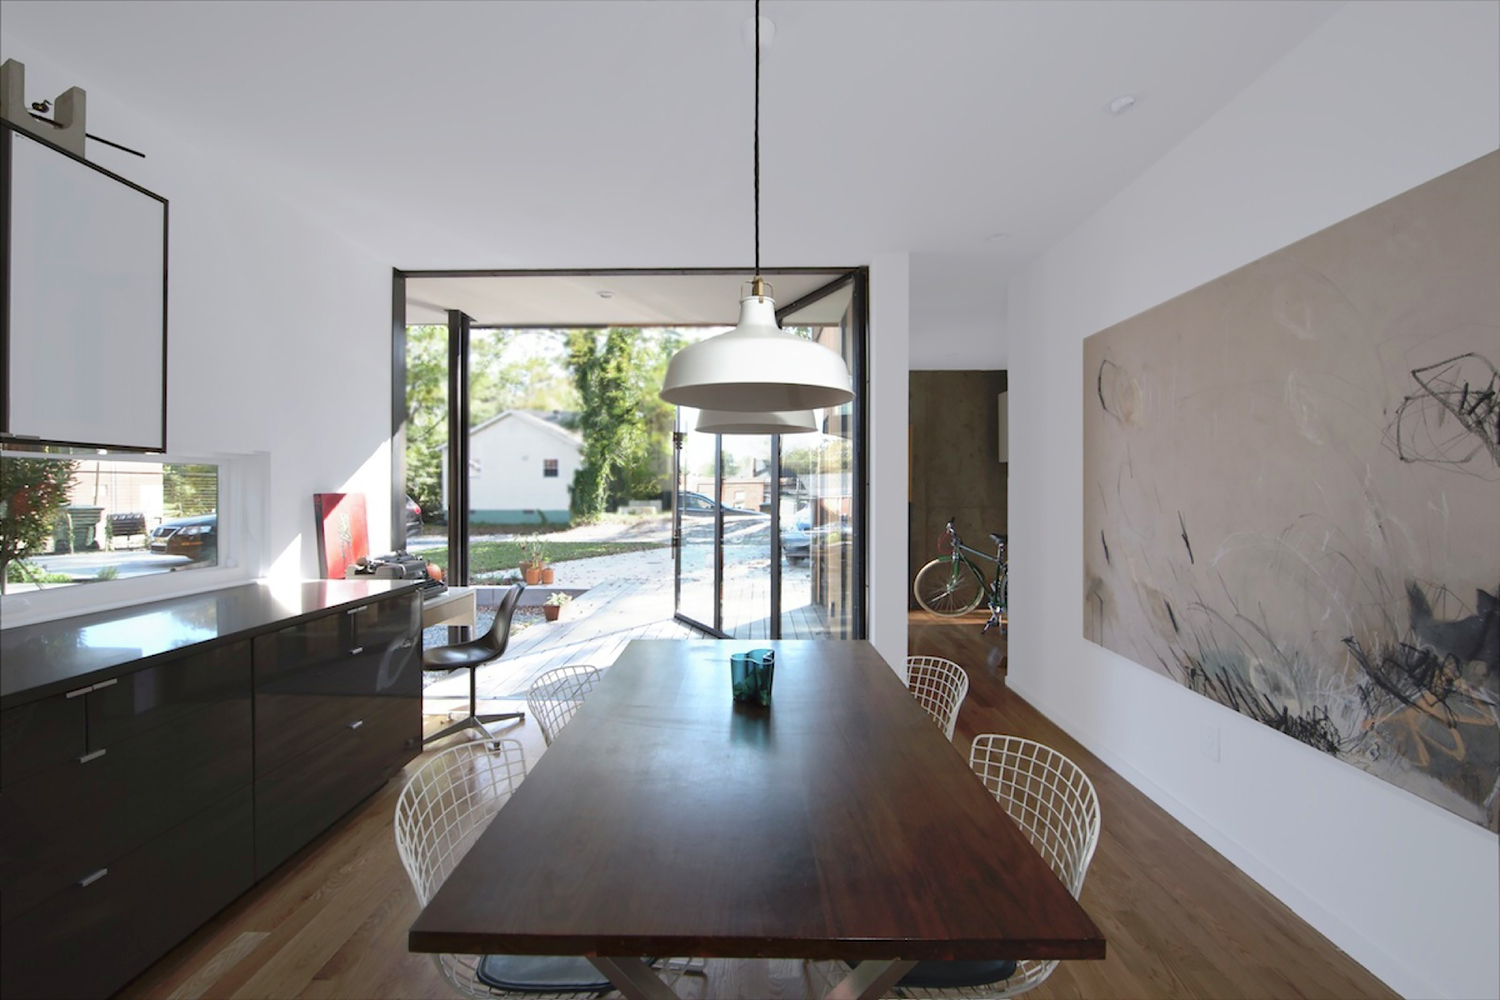 Gallery of ompact Modern Duo / he aleigh rchitecture o. - 1 - ^